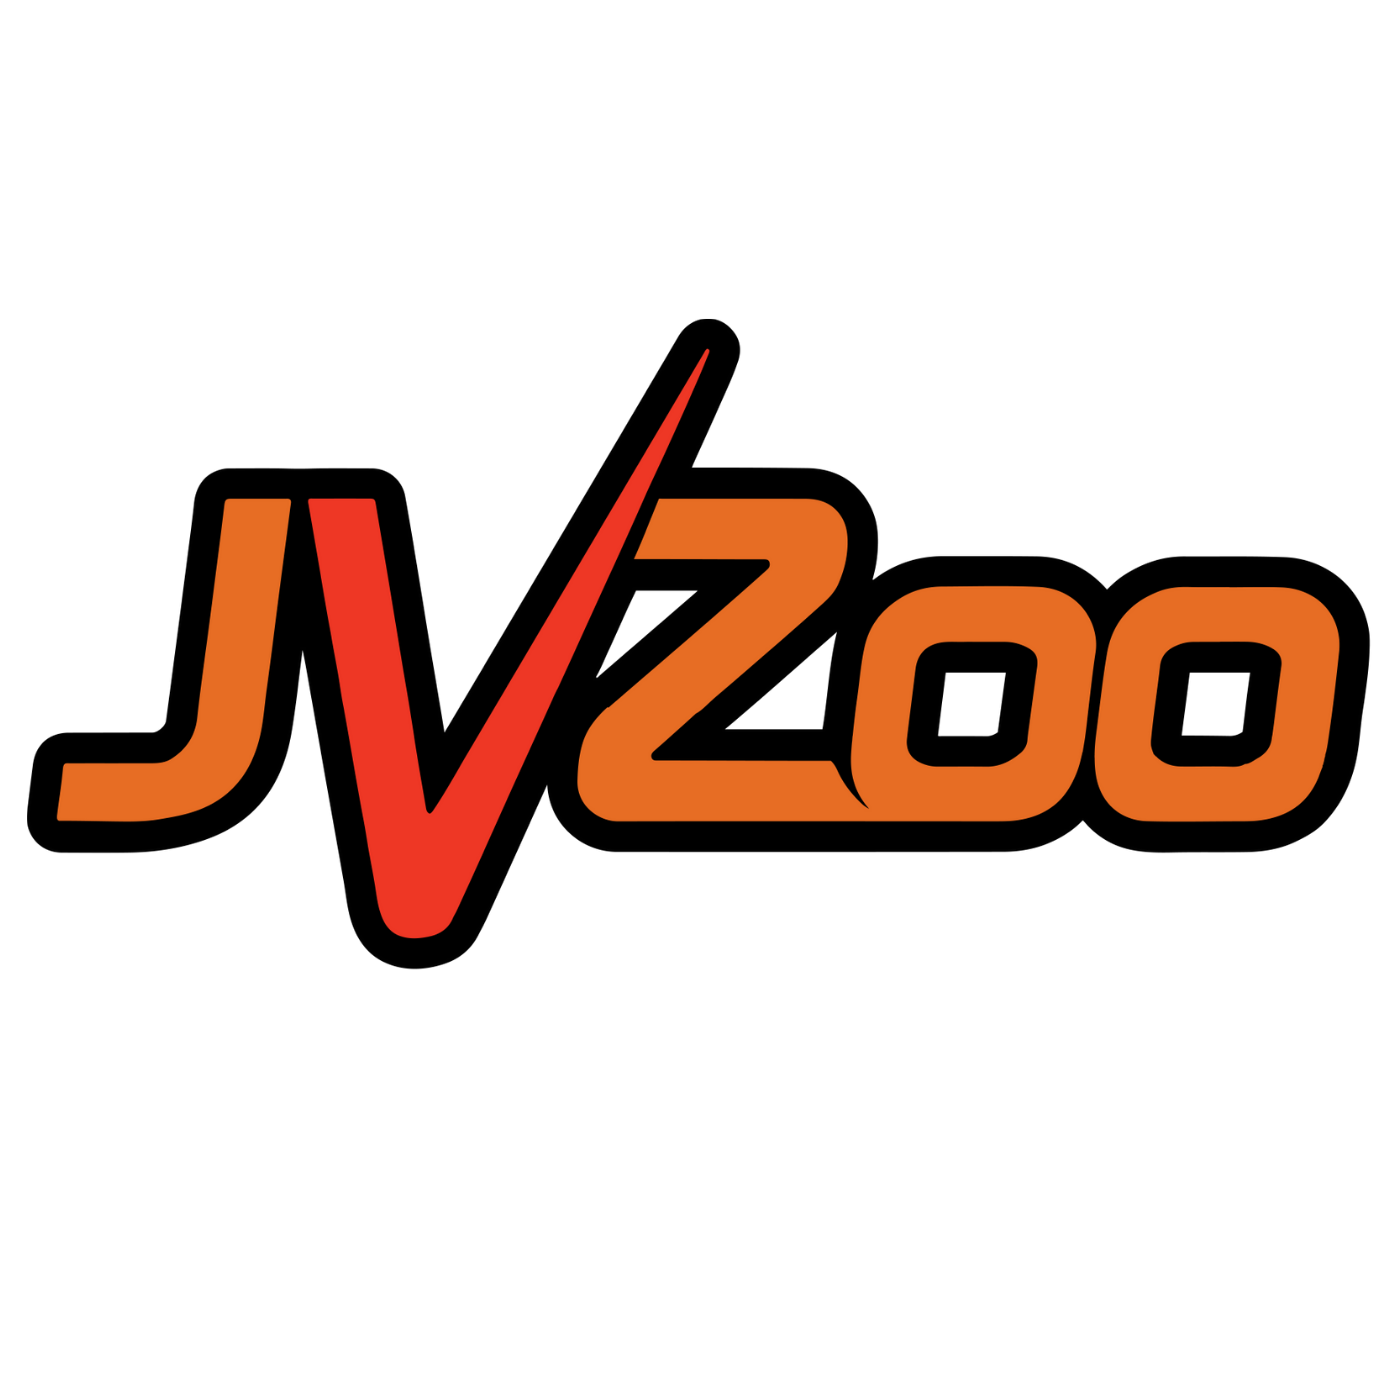 The JVZoo Podcast